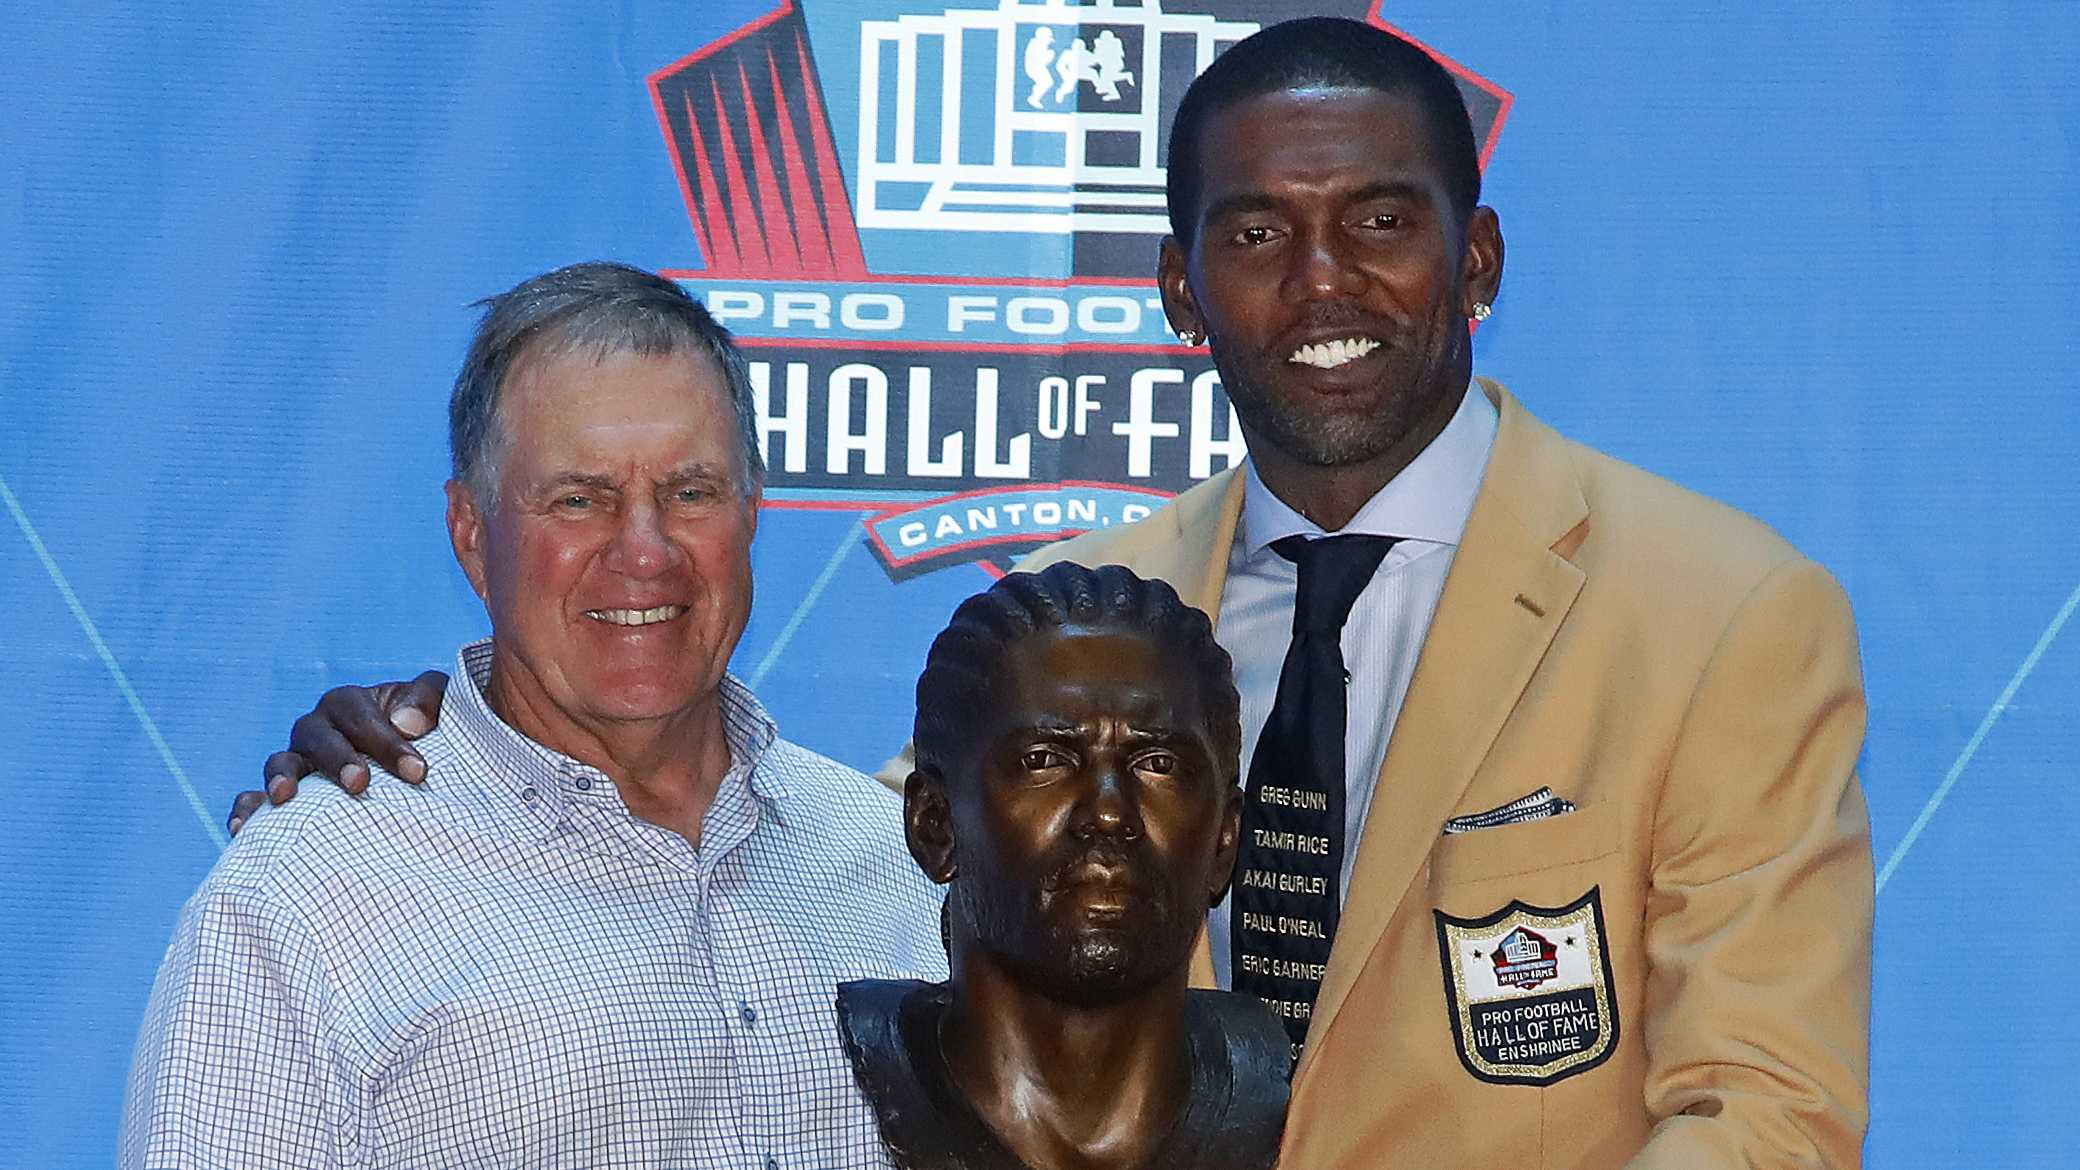 New England Patriots coach Bill Belichick, left, joins former Patriots wide receiver Randy Moss with his Pro Football Hall of Fame bust for a photo during an induction ceremony at the Pro Football Hall of Fame, Saturday, Aug. 4, 2018 in Canton, Ohio. (AP Photo/Gene J. Puskar)